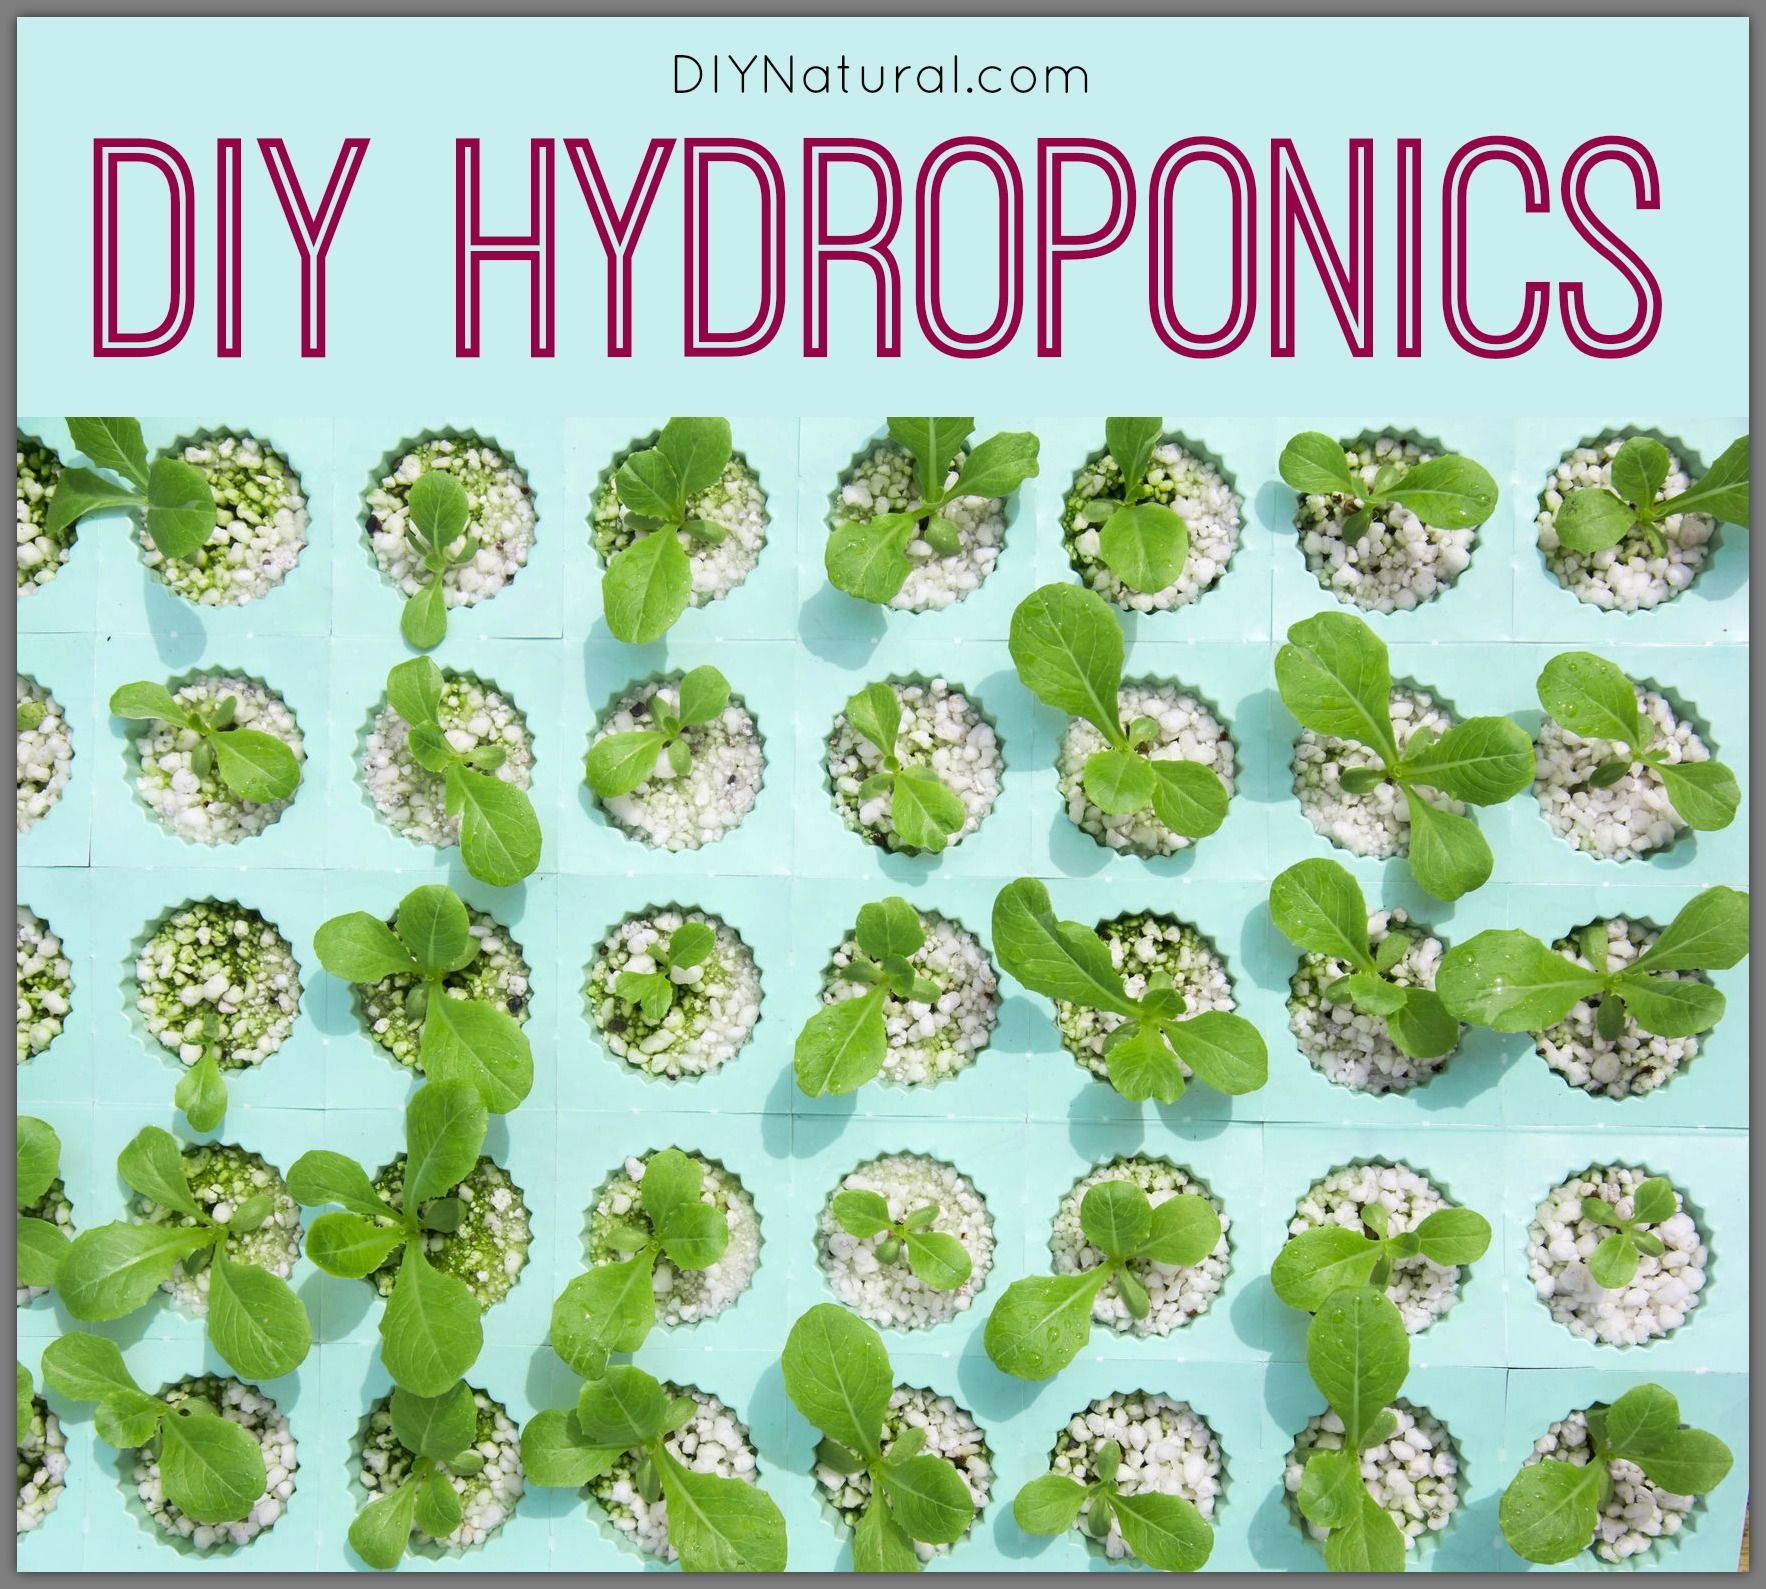 DIY hydroponics allow for simple, inexpensive gardening systems that work even when temperatures are freezing. Don't let the cold stop you from growing food!